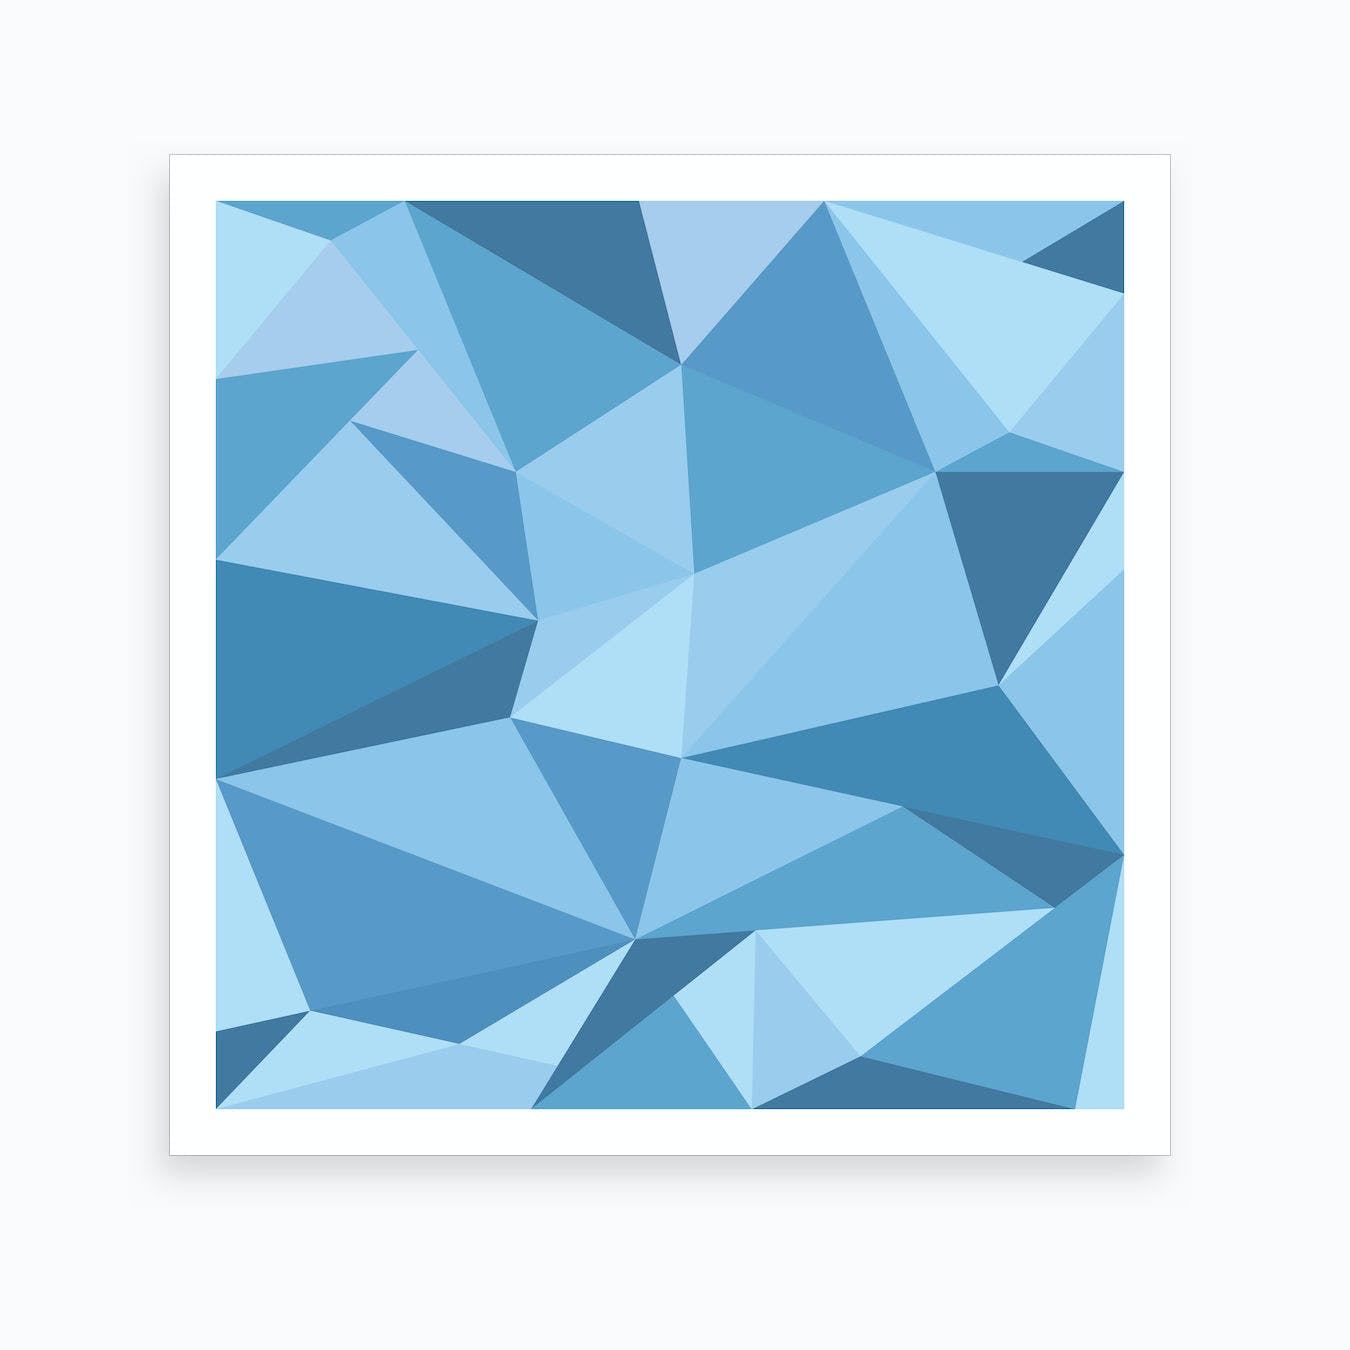 Fifty Shades of Blue - Square